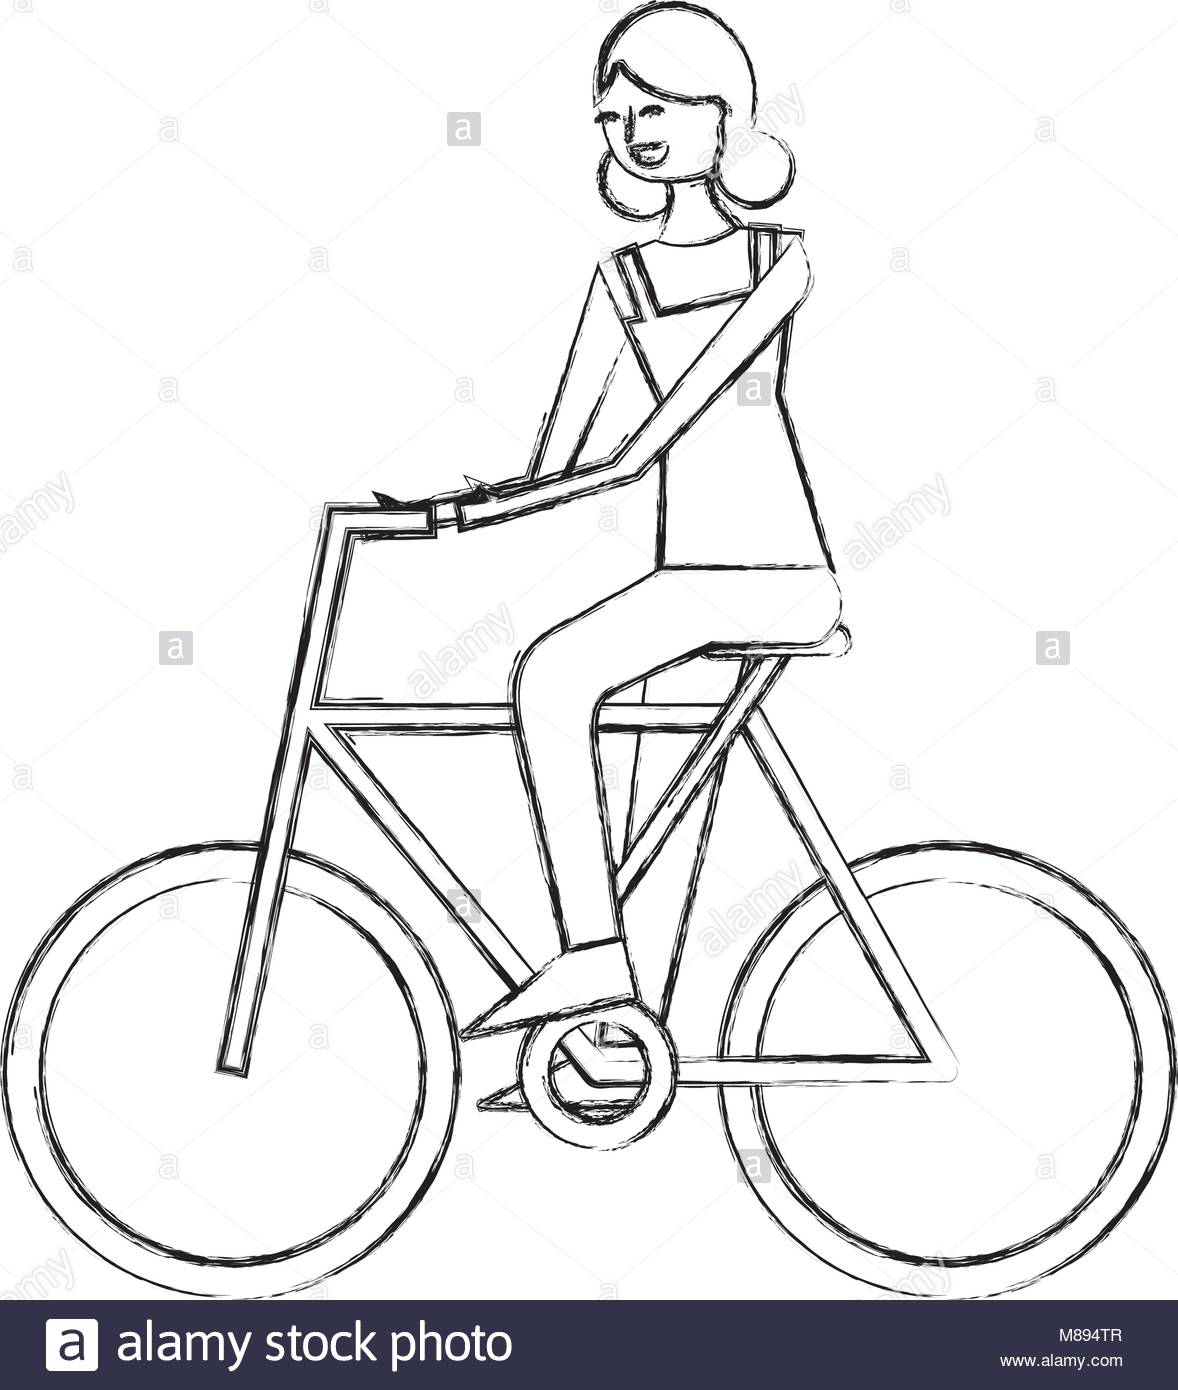 1178x1390 Cycling Bicycle Sketch Stock Photos Amp Cycling Bicycle Sketch Stock